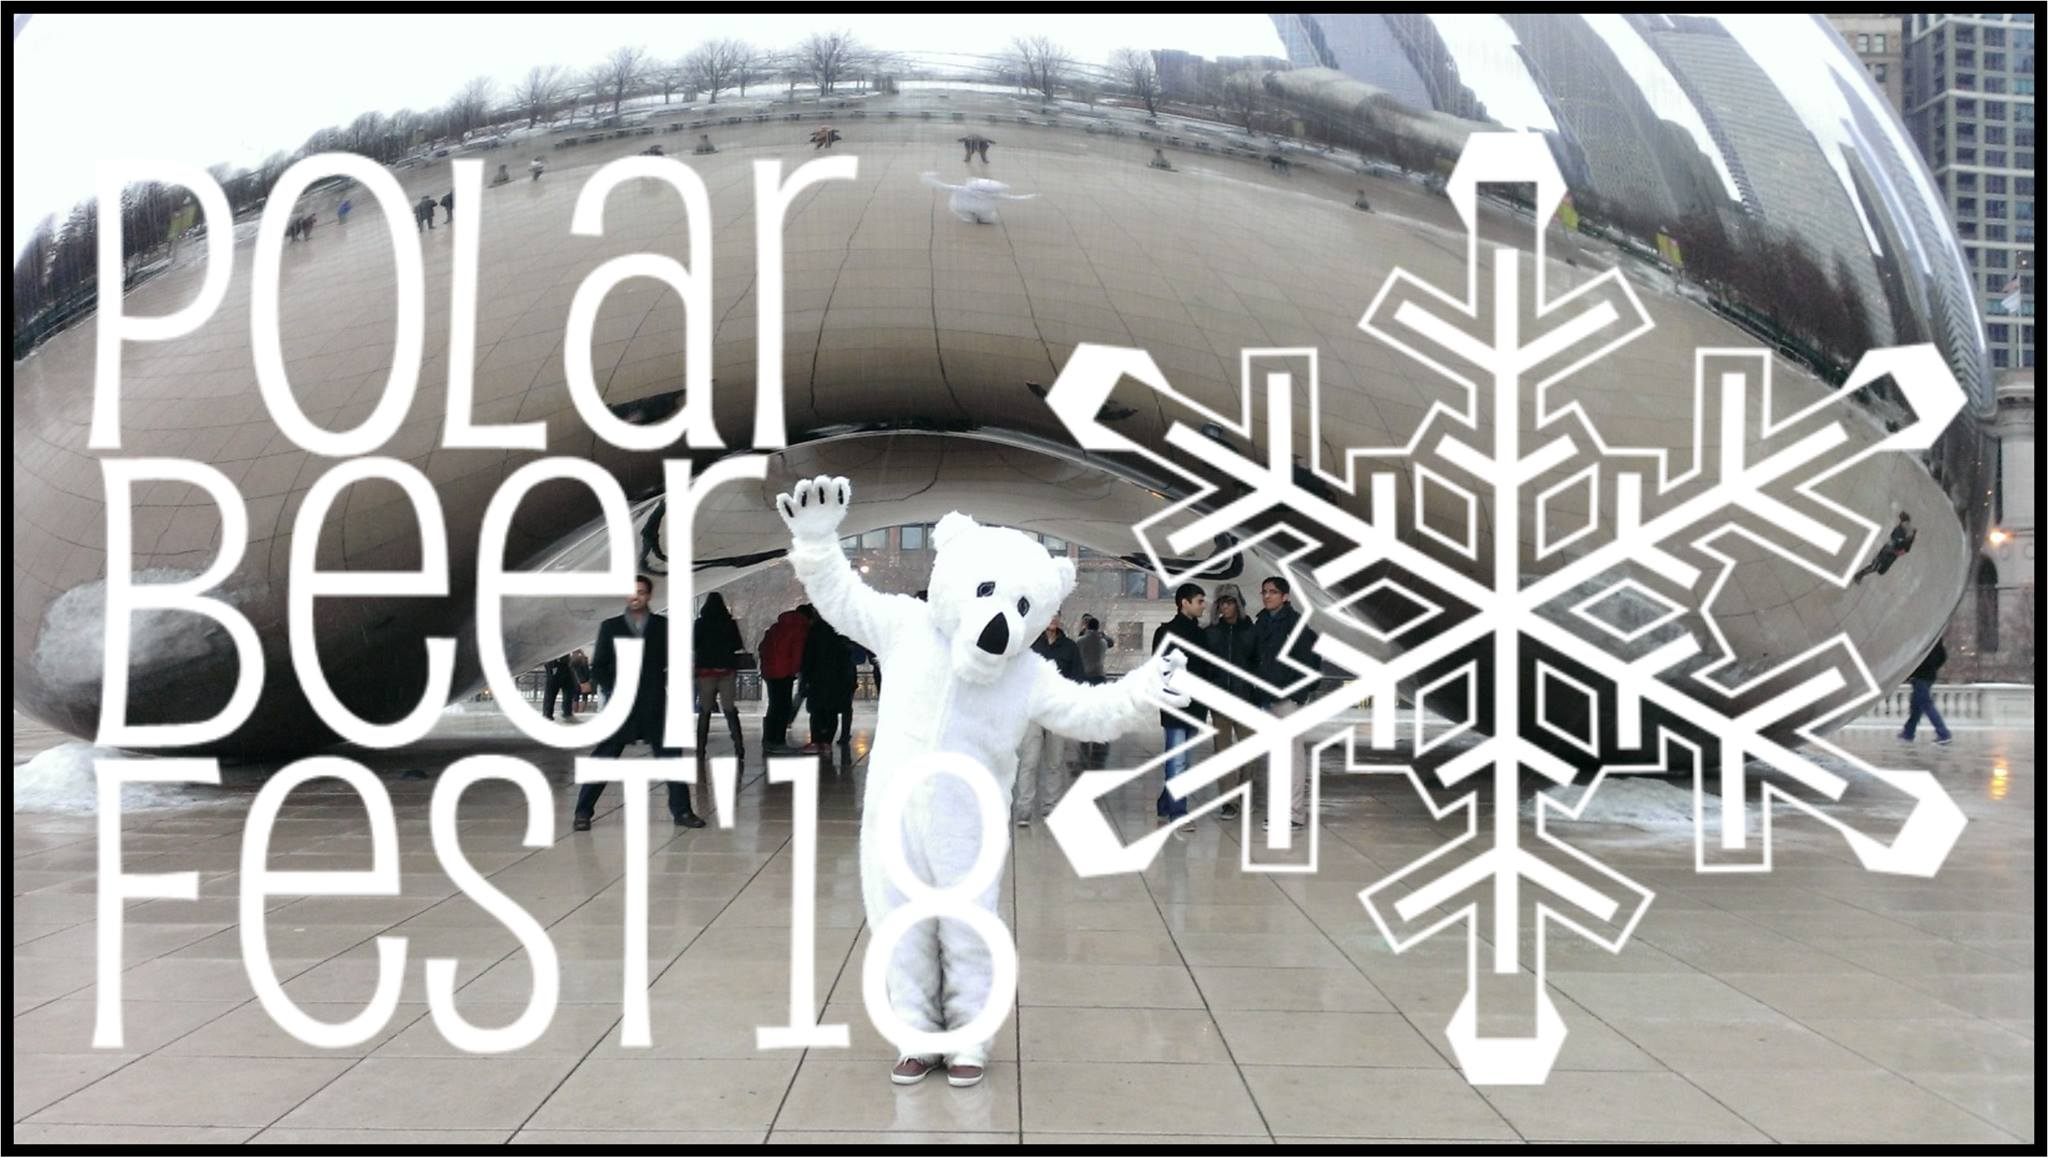 POLAR BEER FESTIVAL IS AN OUTDOOR STRONG ALE FEST FEATURING SAMPLES FROM SOME OF ILLINOIS' TOP BREWERS.   $40 ticket includes beer samples, appetizer station & commemorative glass!    The event will be held on the roof at Rock Bottom, dress warm!   Buy Tickets Here: http://bit.ly/2Fycc45